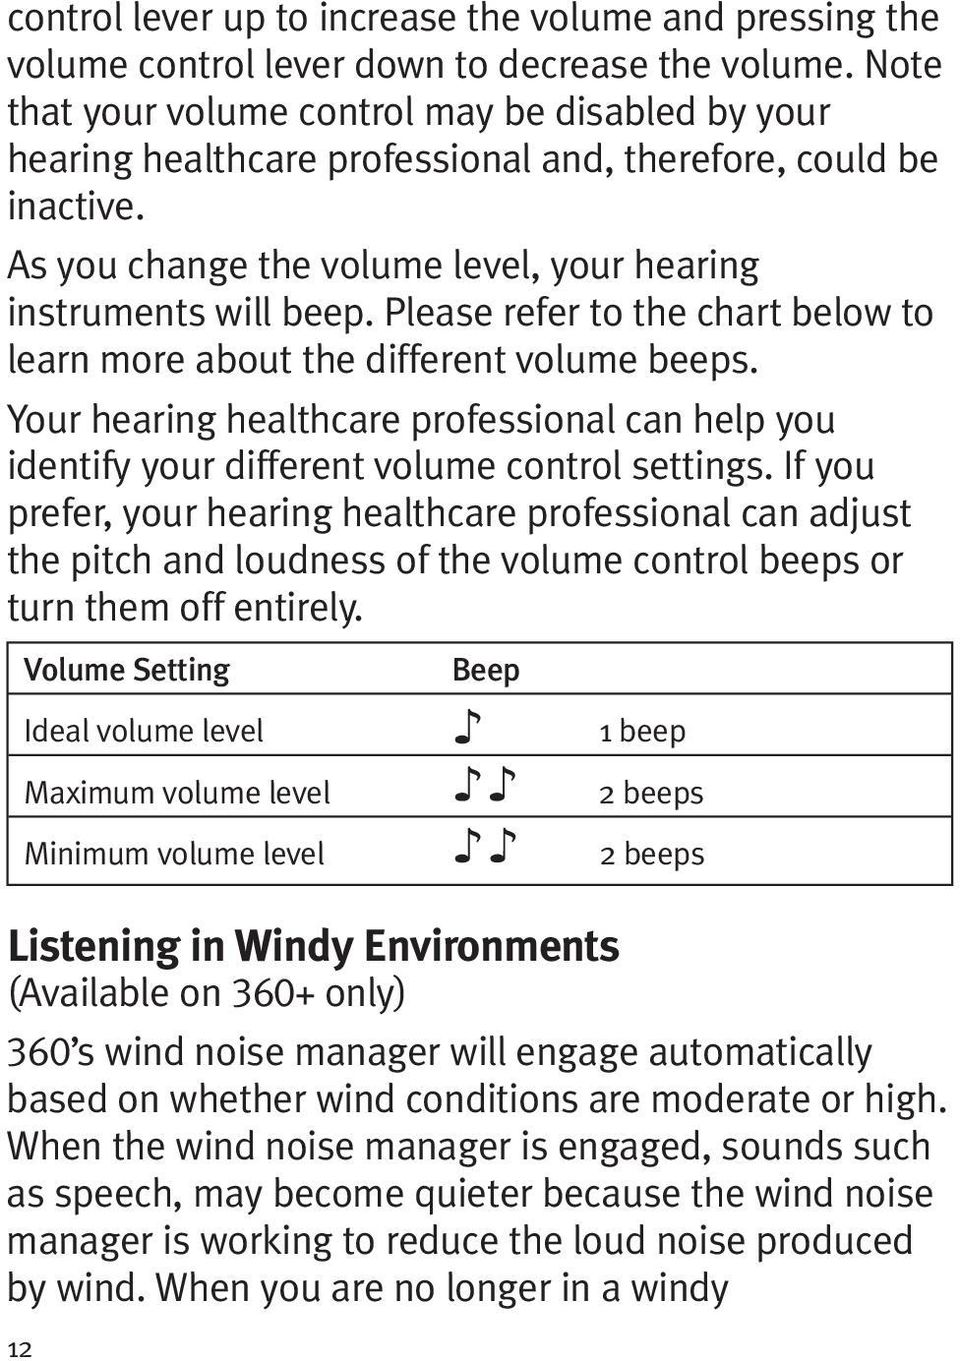 Please refer to the chart below to learn more about the different volume beeps. Your hearing healthcare professional can help you identify your different volume control settings.